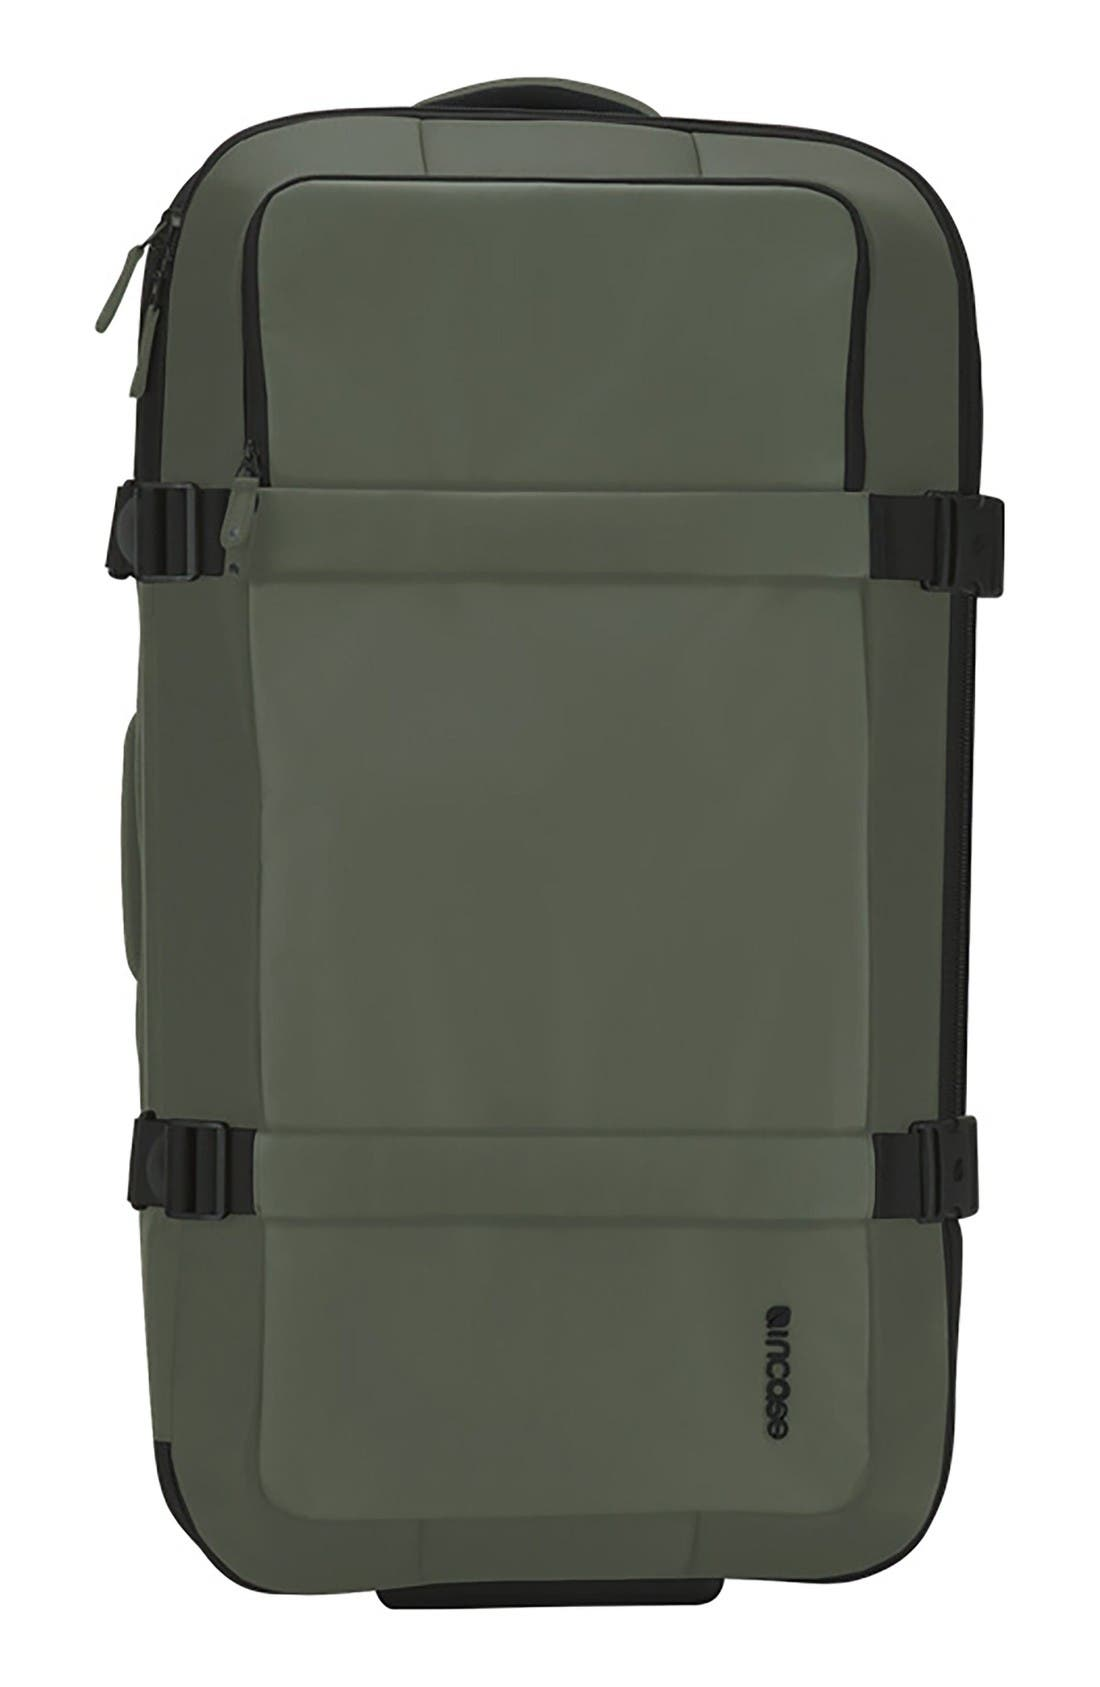 Incase Designs TRACTO 30-Inch Wheeled Duffel Bag